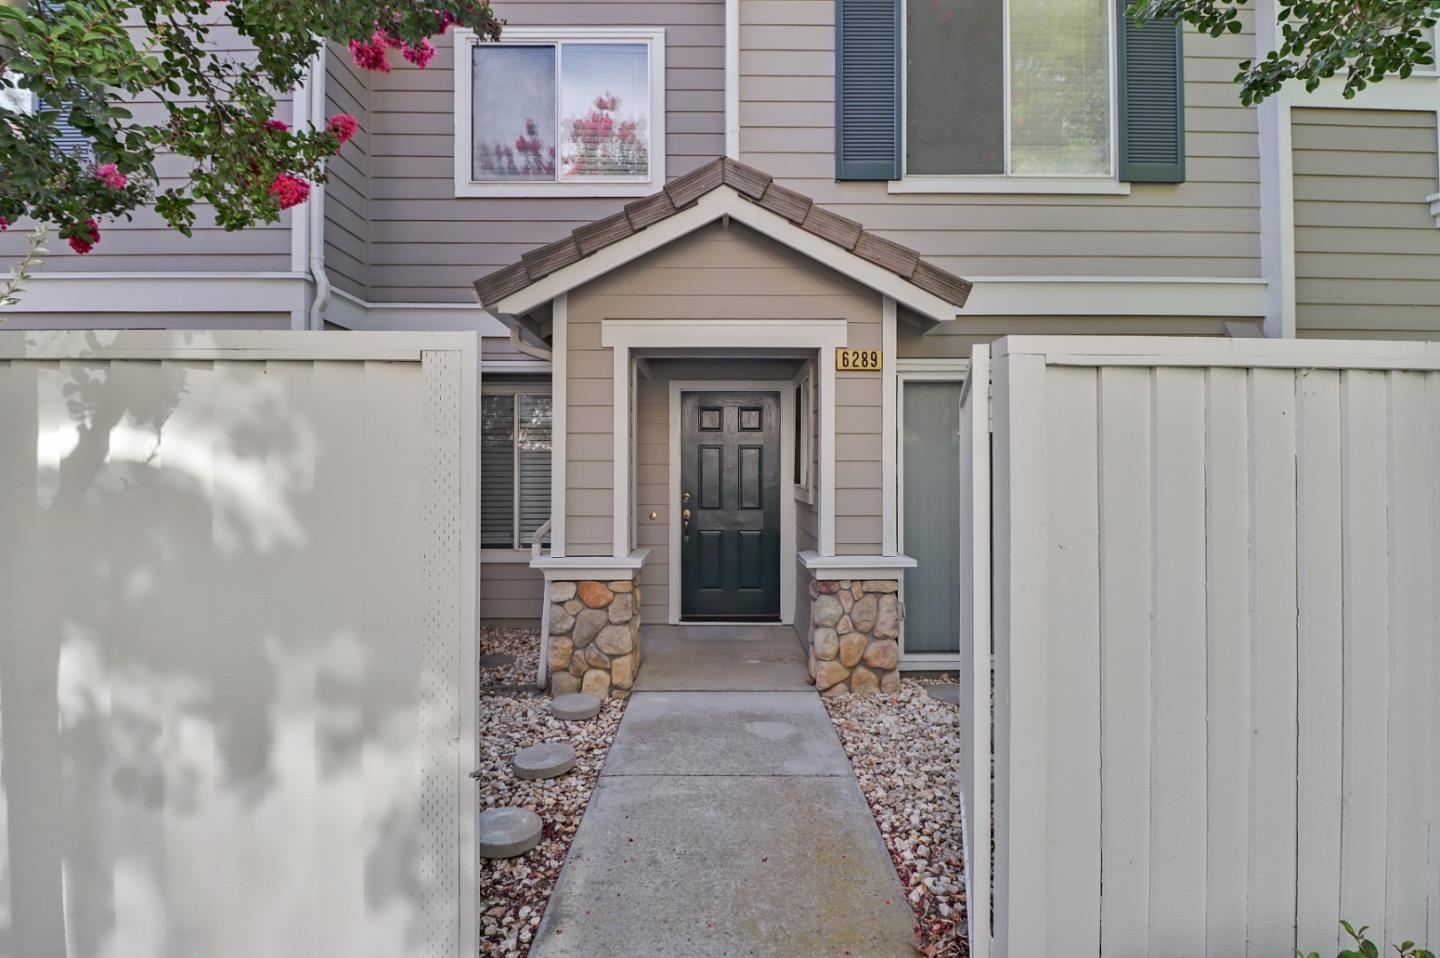 OFFER DEADLINE MONDAY AUG. 2nd AT NOON! This 2 Bed/2.5 Bath/1 Car Garage Townhouse offers the perfect location in the serene & quiet California Groves Community just minutes away from VTA Lightrail, 85/87/101 for an easy commute, Kaiser, Restaurants & Shopping. Upon entering thru the private patio, you will find over $25k in upgrades to the property starting with a fresh coat of paint, new carpet & laminate flooring, appliances, blinds & much more! The Kitchen features wood cabinets for your storage needs, new quartz counter tops & a large sink overlooking the fireplace in the cozy living room. Retire upstairs to the Master Bedroom where the high ceilings & bright light from the window create a peaceful atmosphere. The room also has his & her closets, dual sinks & shower/soaking tub combo perfect for relaxing after a long day. Enjoy all the amenities the community has to offer, walking distance to the community pool, sports courts, playground & shaded grassy areas great for picnics!